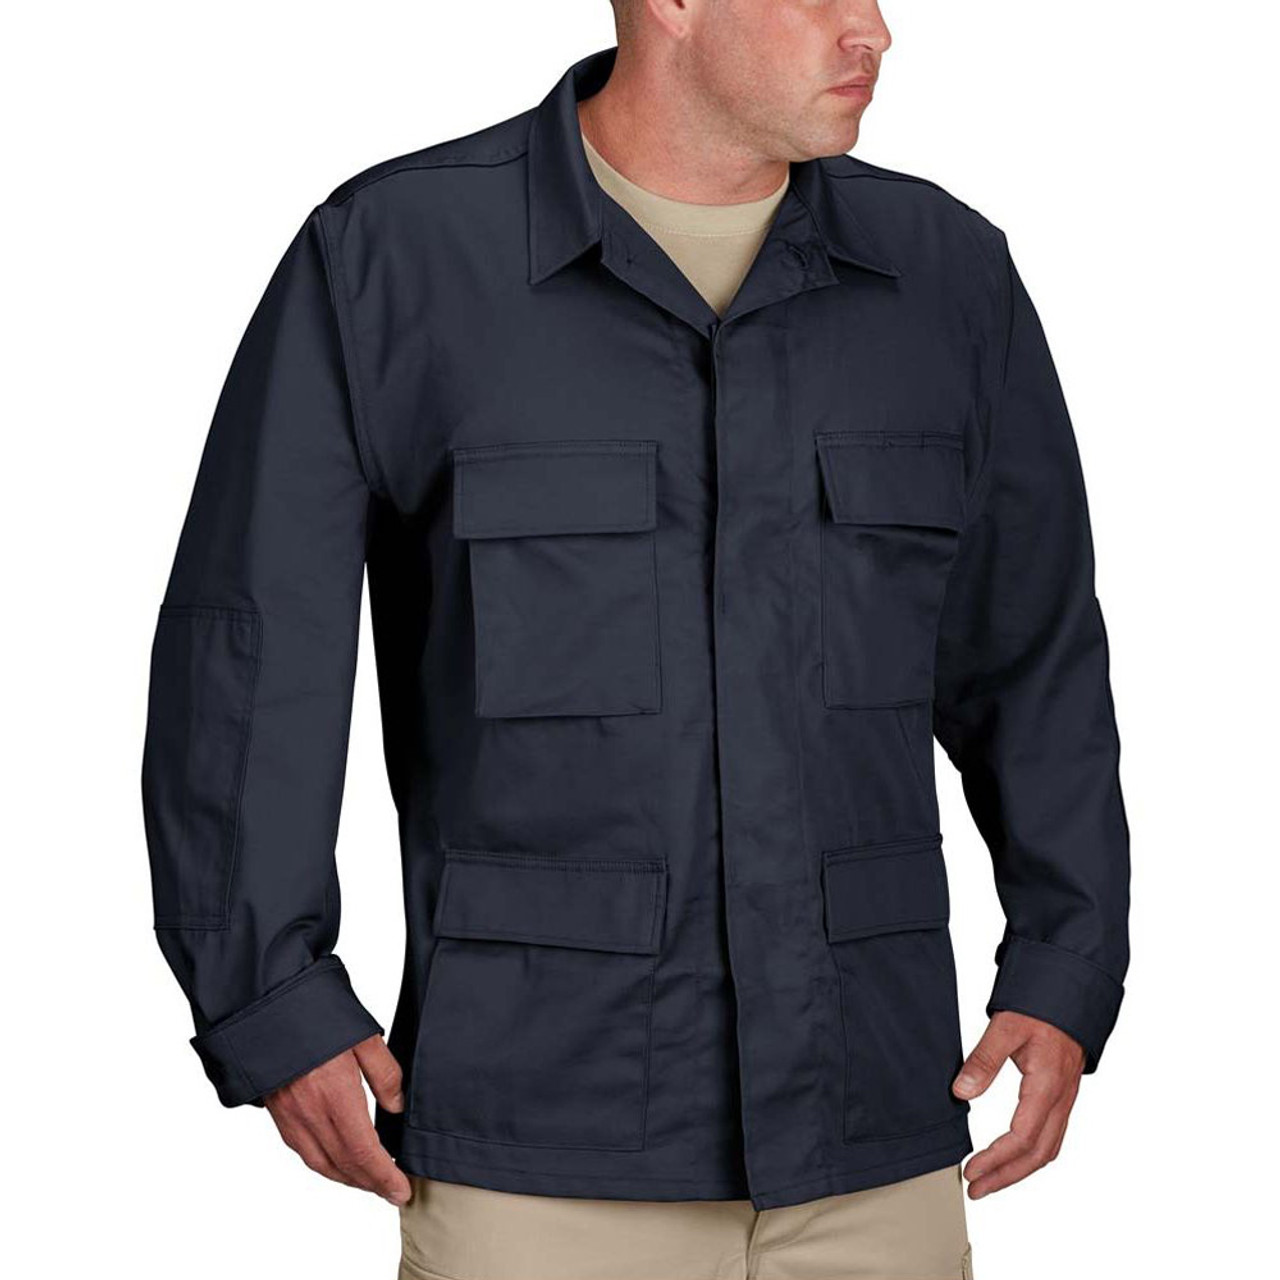 Propper® F5454-12 BDU Tactical Uniform Coat Jacket, Cotton/Polyester twill, Adjustable Cuffs,  Four front cargo pockets with hidden button flaps, available in black, khaki, woodland, olive and dark navy,